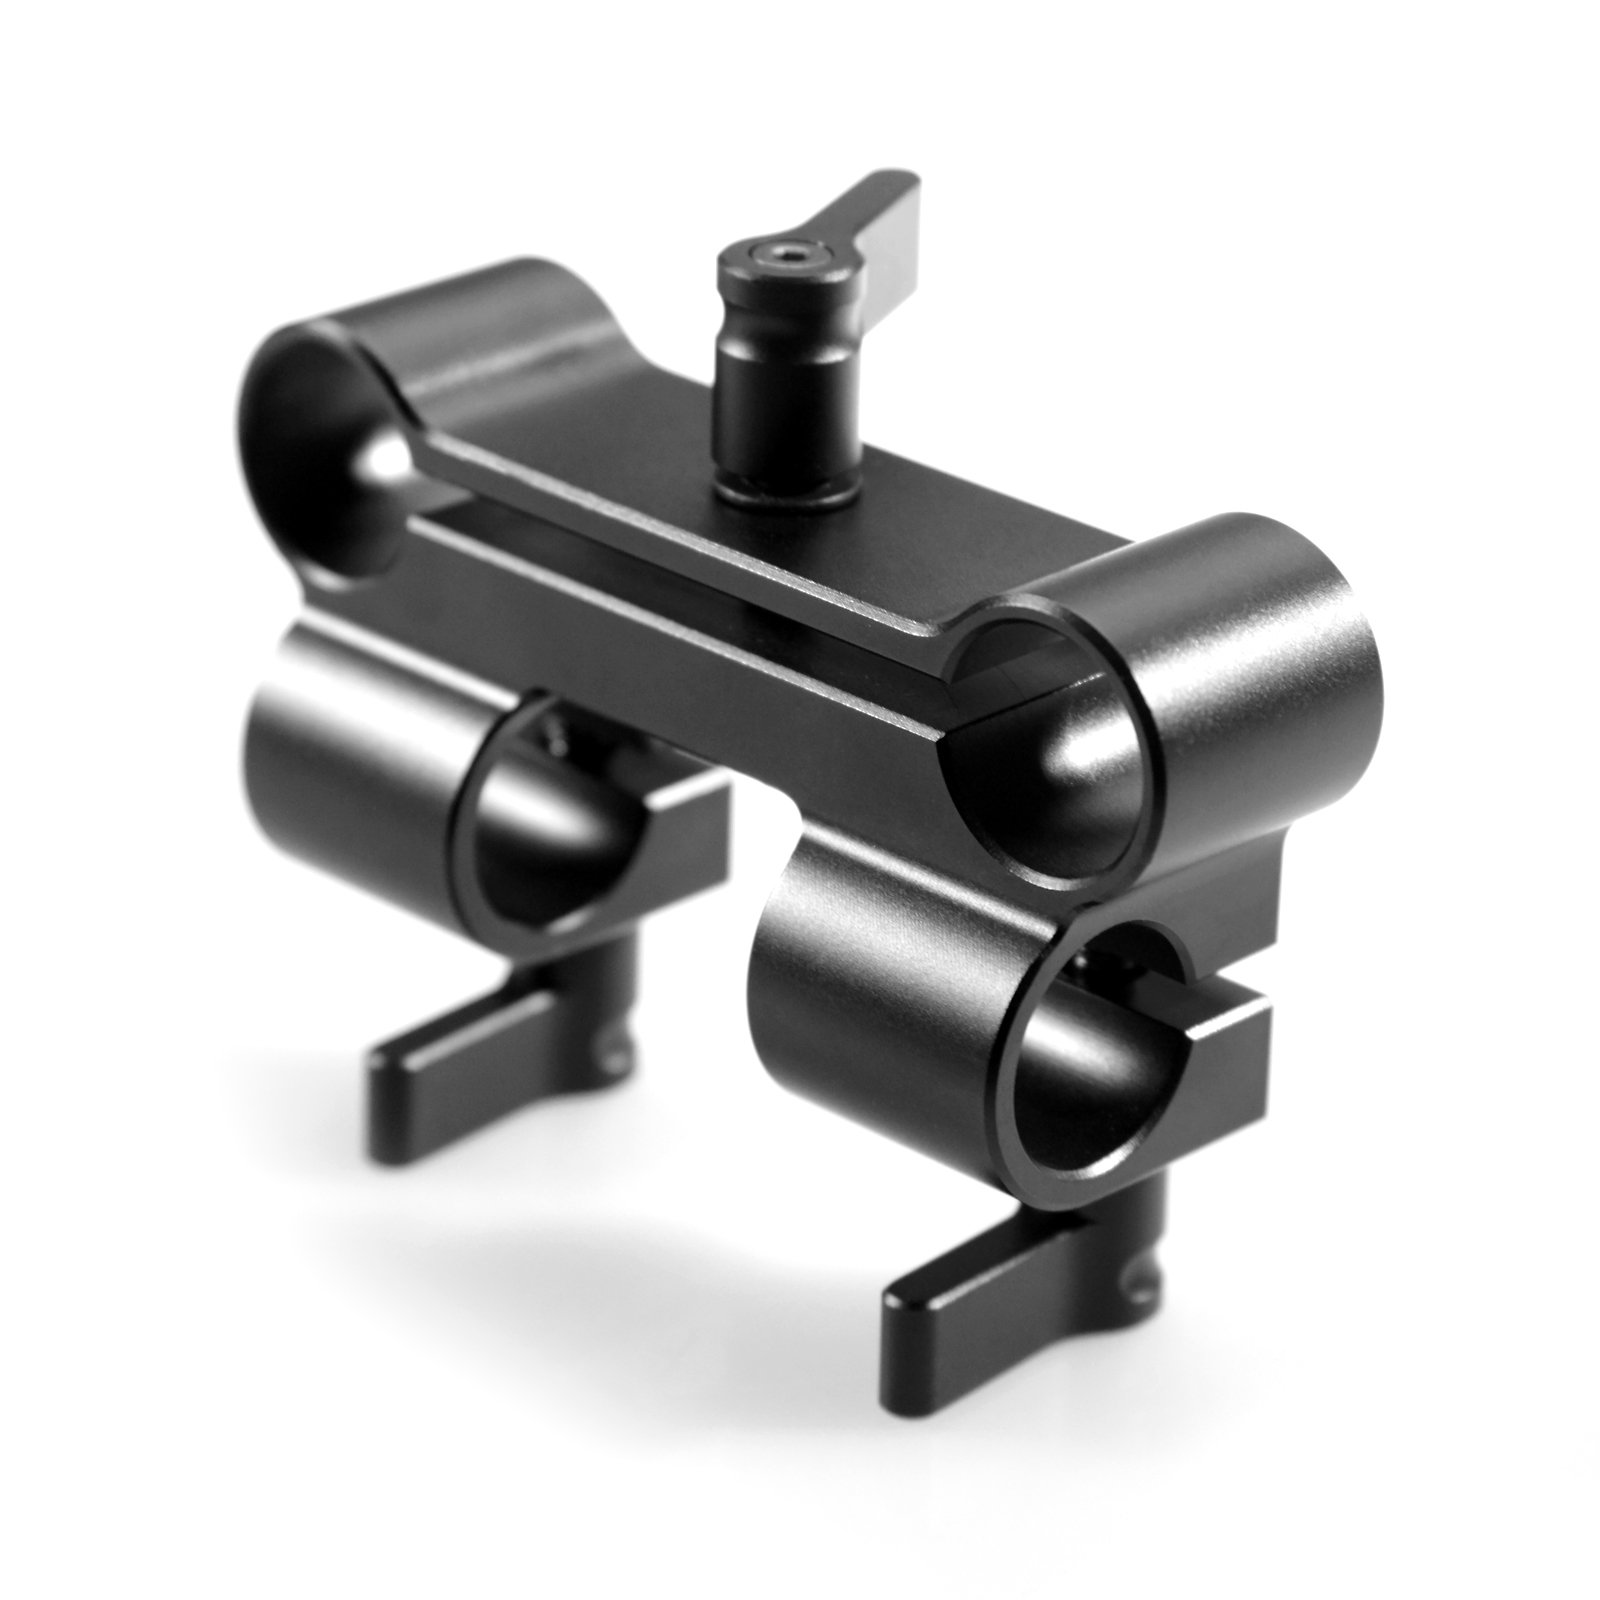 SMALLRIG Clamp 90 Degree Rod Clamp Railblock for Side Handles DSLR Rig - 922 by SmallRig